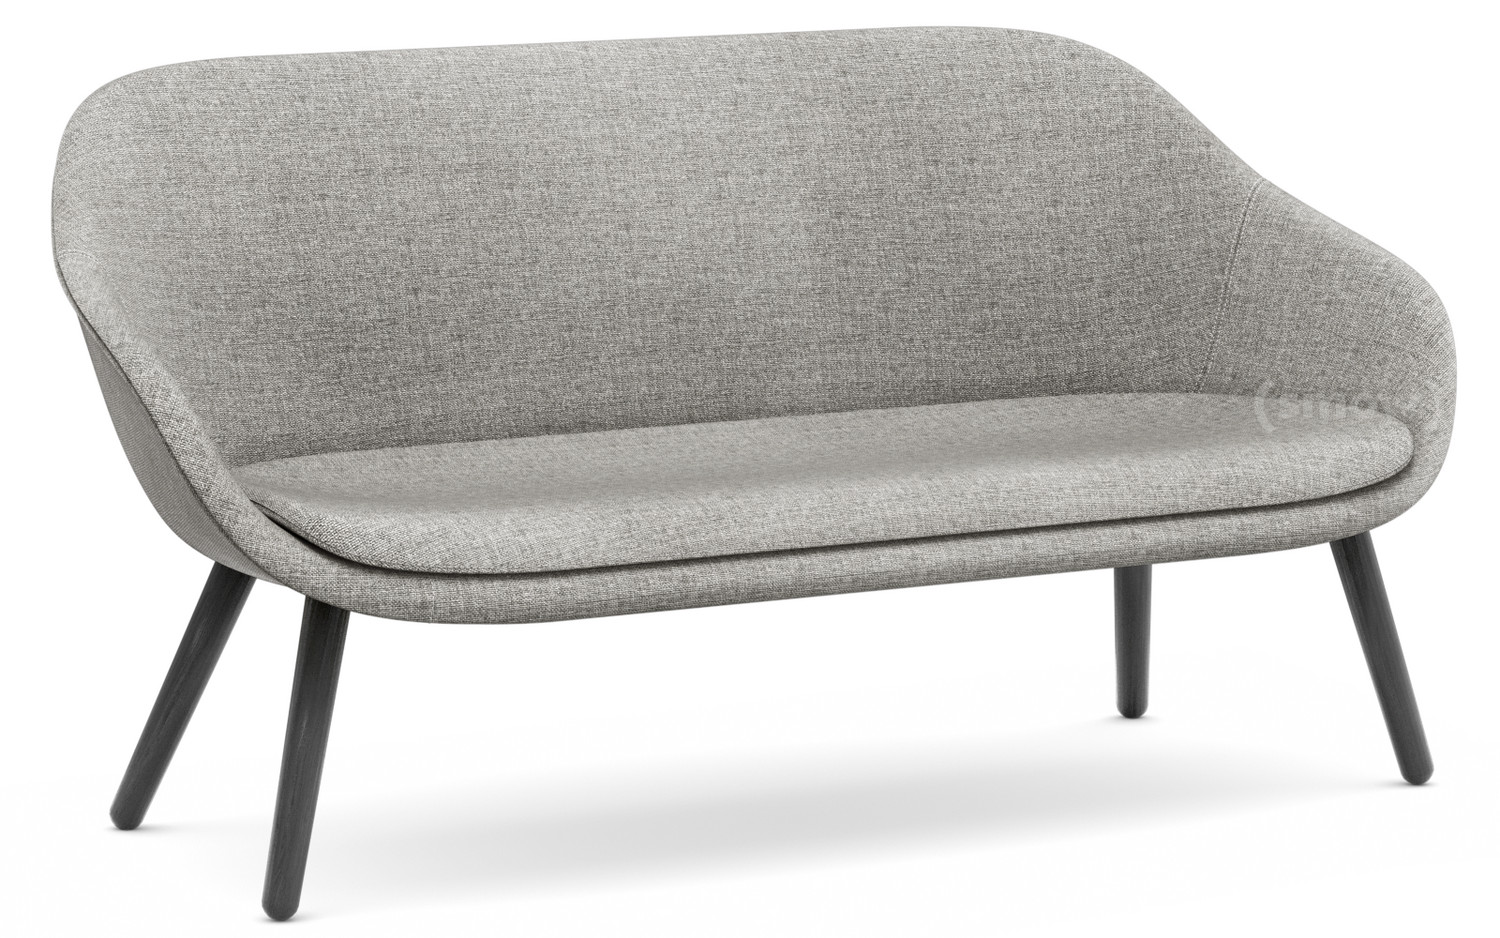 Lounge Sofa Grau Hay About A Lounge Sofa For Comwell Hallingdal 116 Warm Grey Black Stained Oak